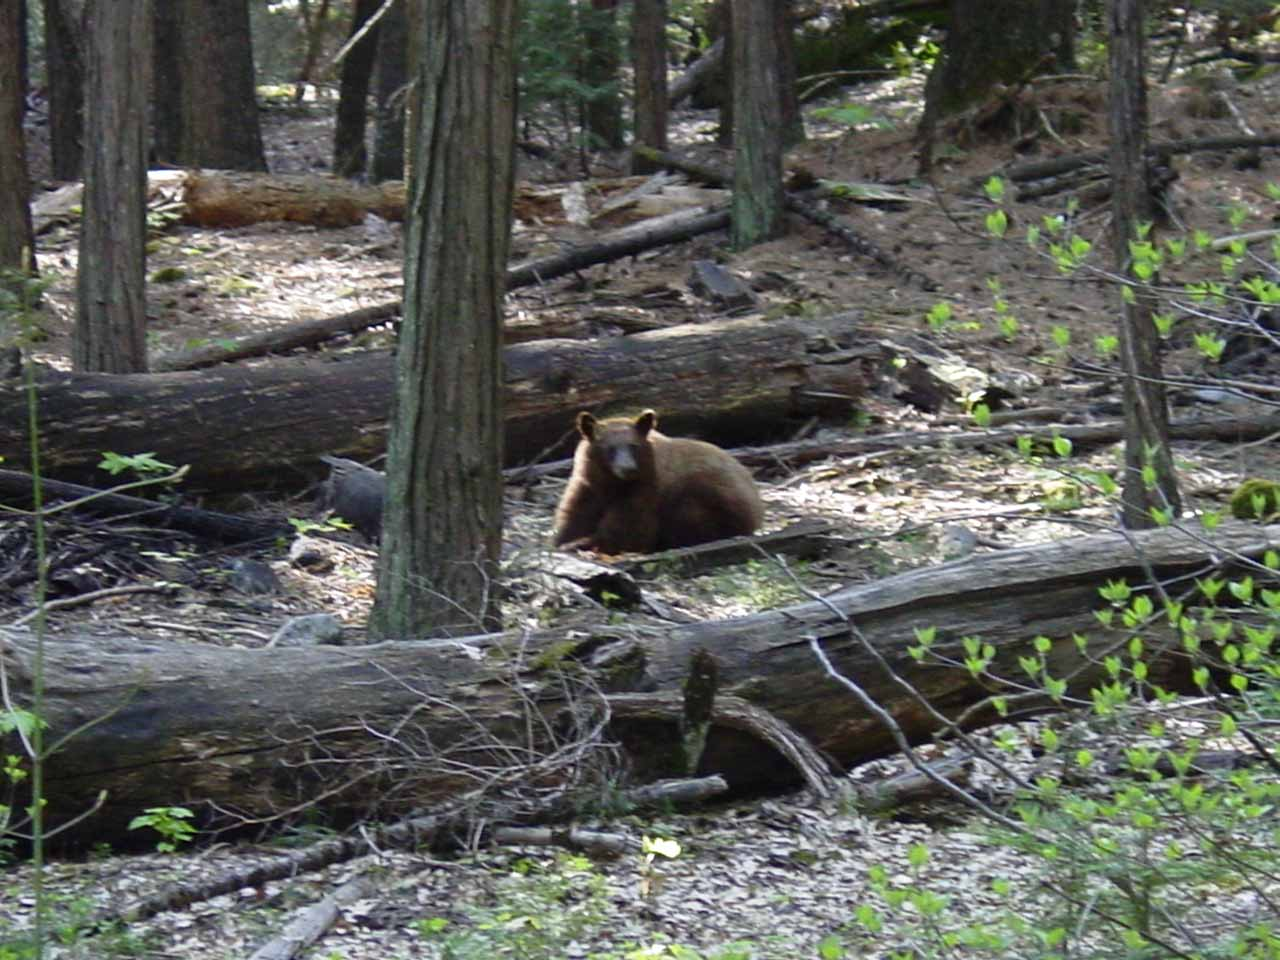 A bear in Yosemite near Fern Spring in April 2004